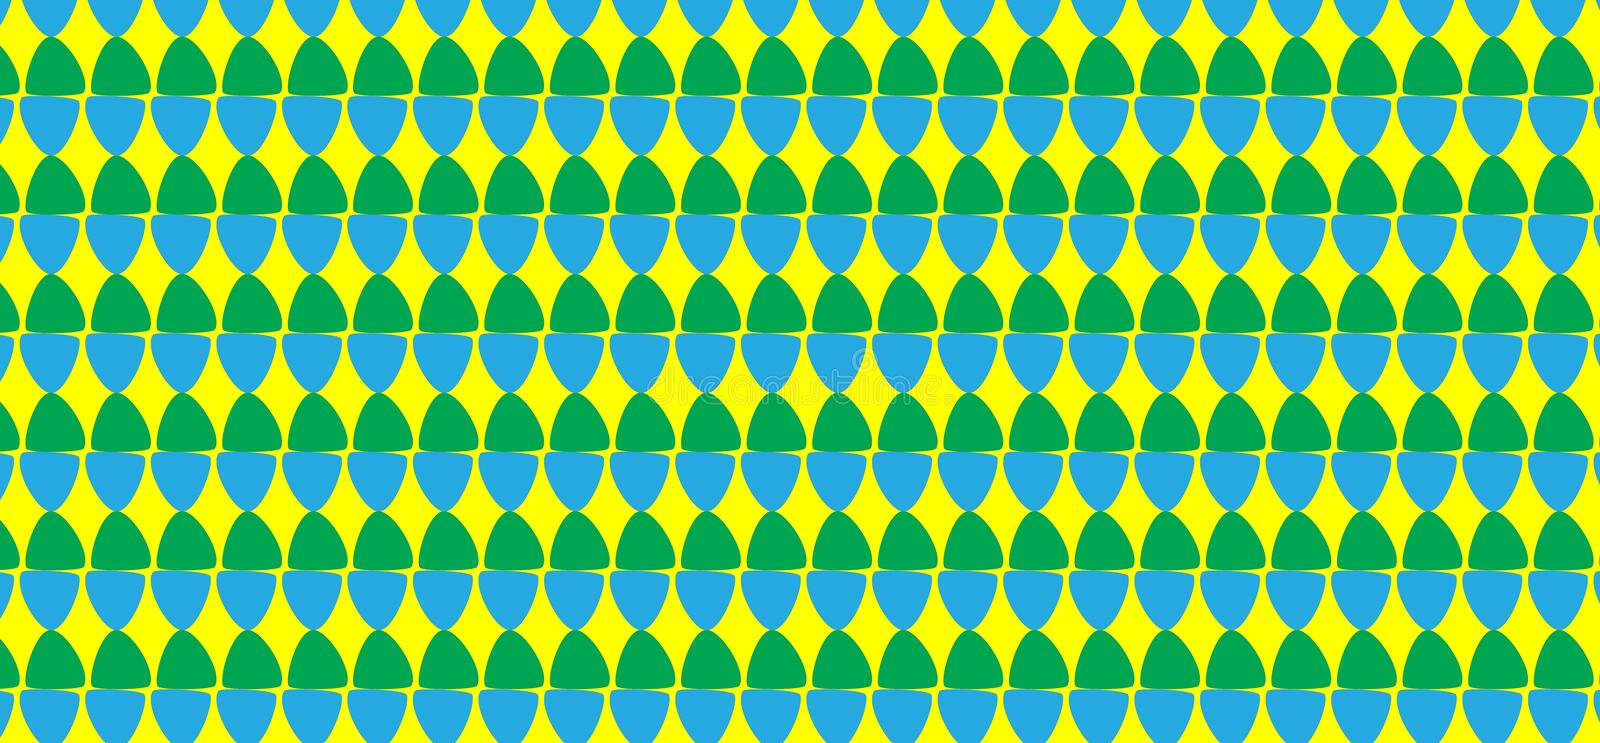 Simple Modern abstract green and blue egg pattern royalty free stock photos